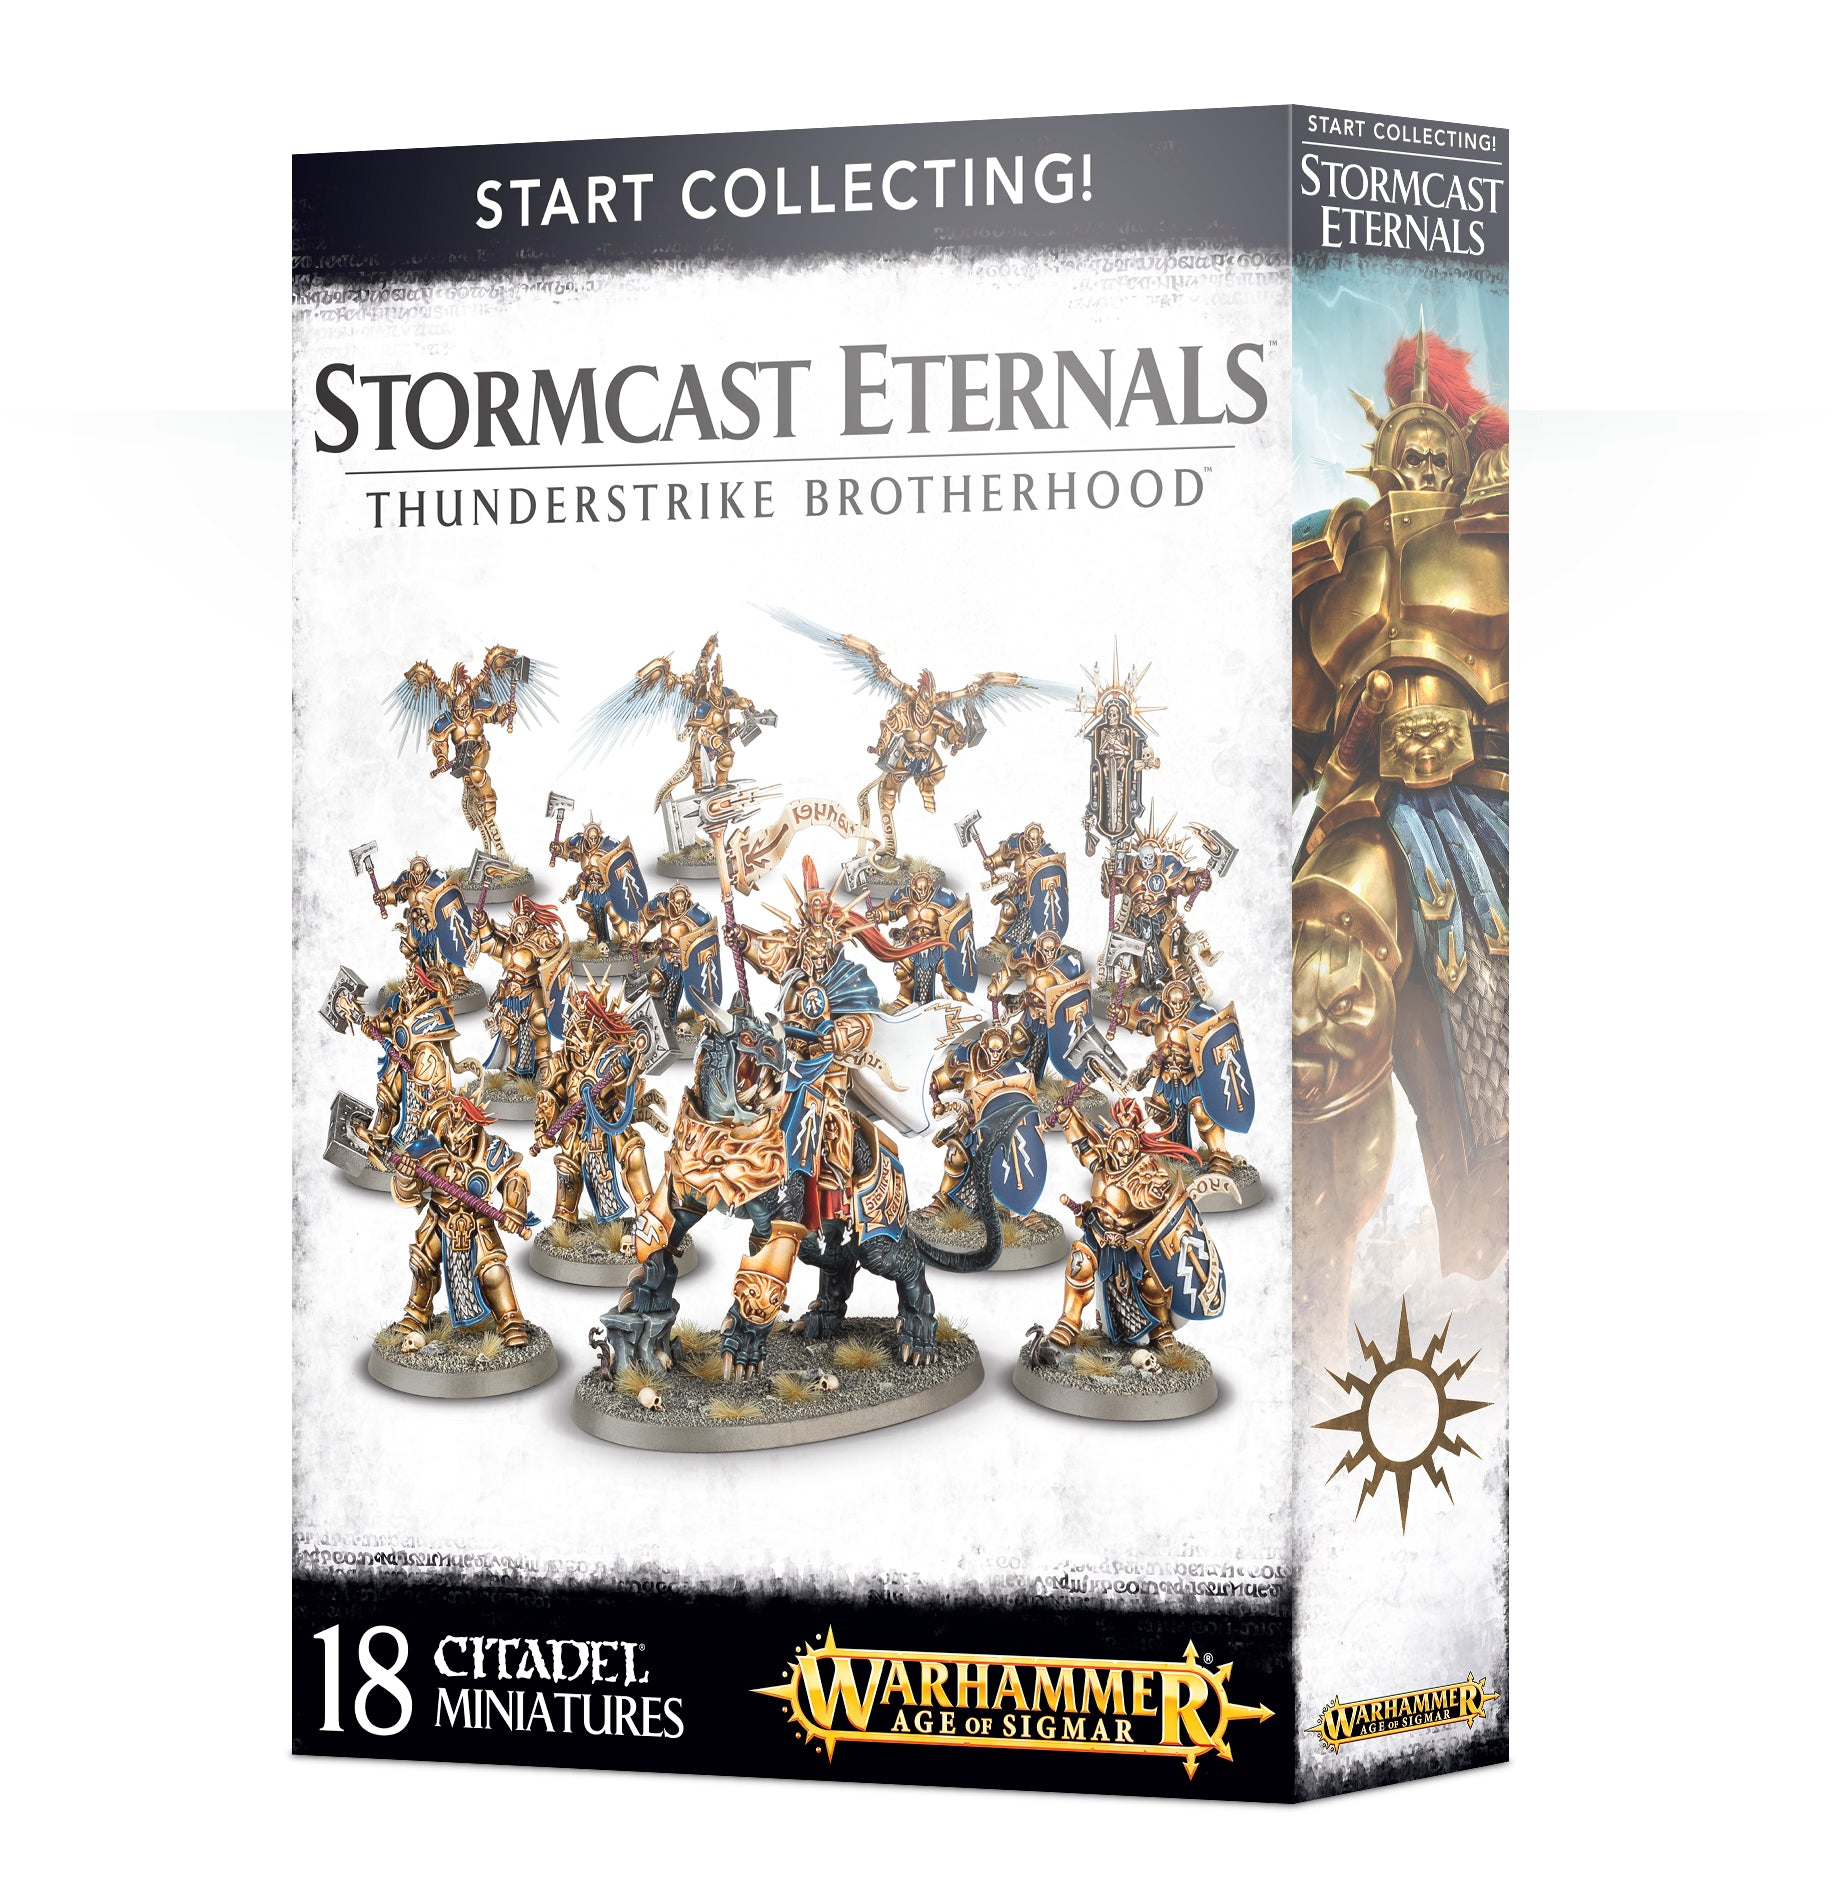 Start Collecting! Stormcast Eternals: Thunderstrike Brotherhood | Mythicos